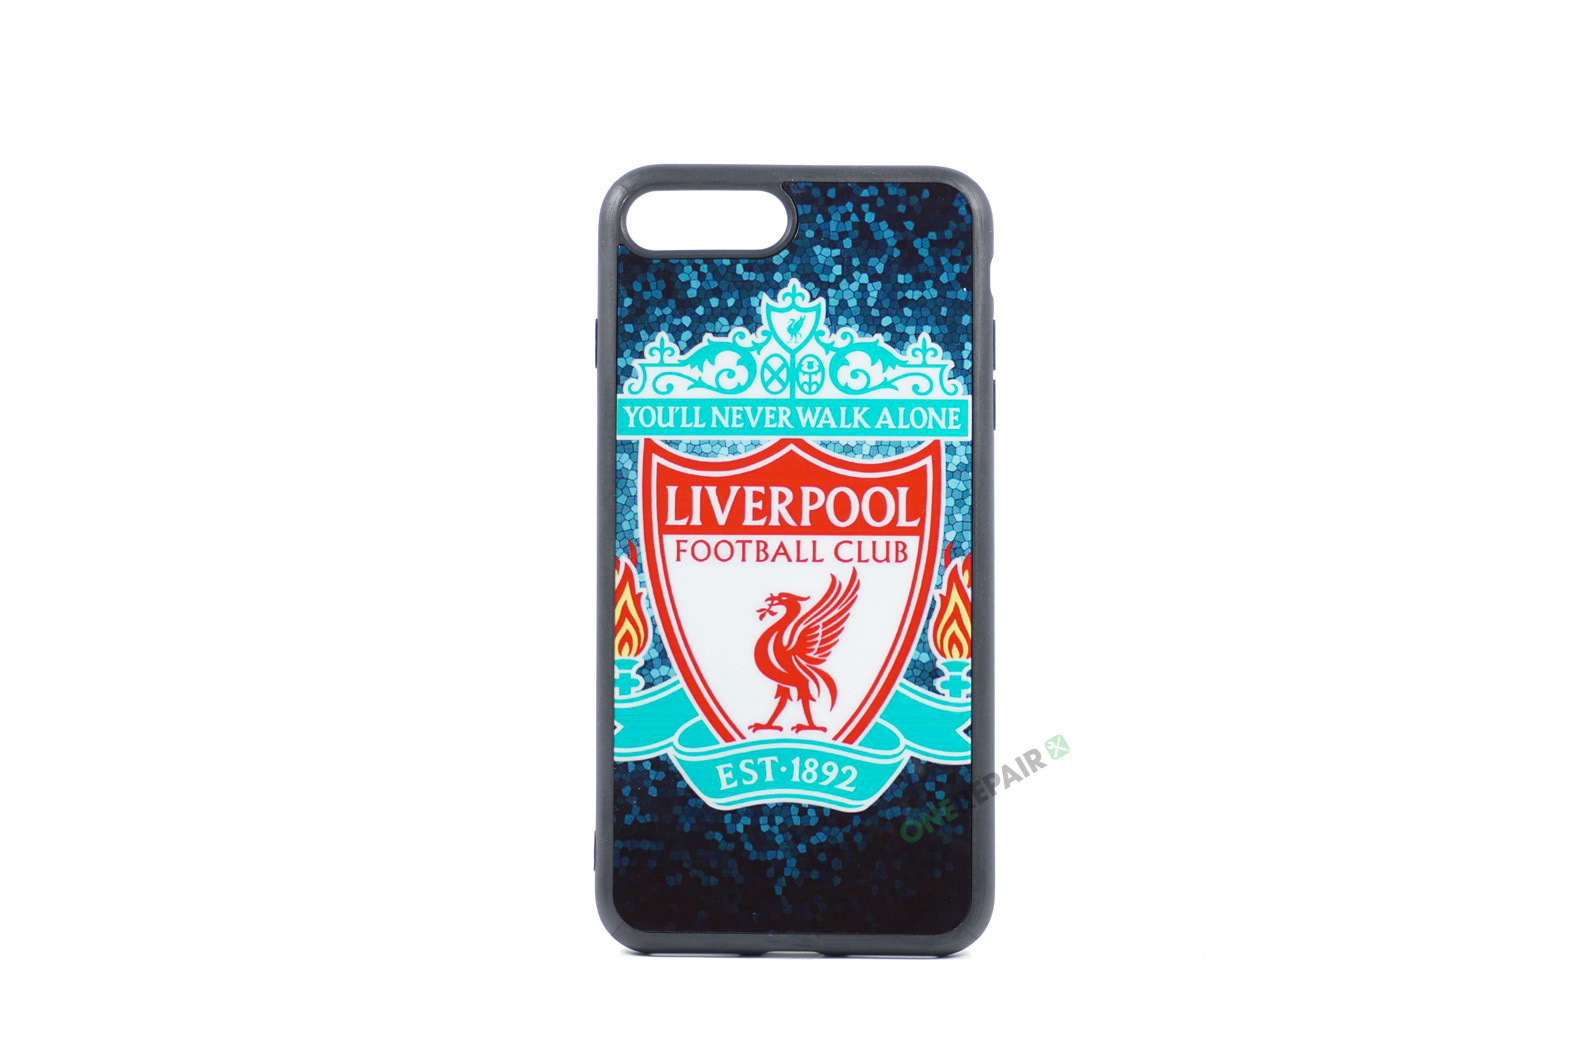 350857_iPhone_7+_8+_Plus_Fodbold_Liverpool_YNWA_Dark_Cover_Sort_OneRepair_WM_00001